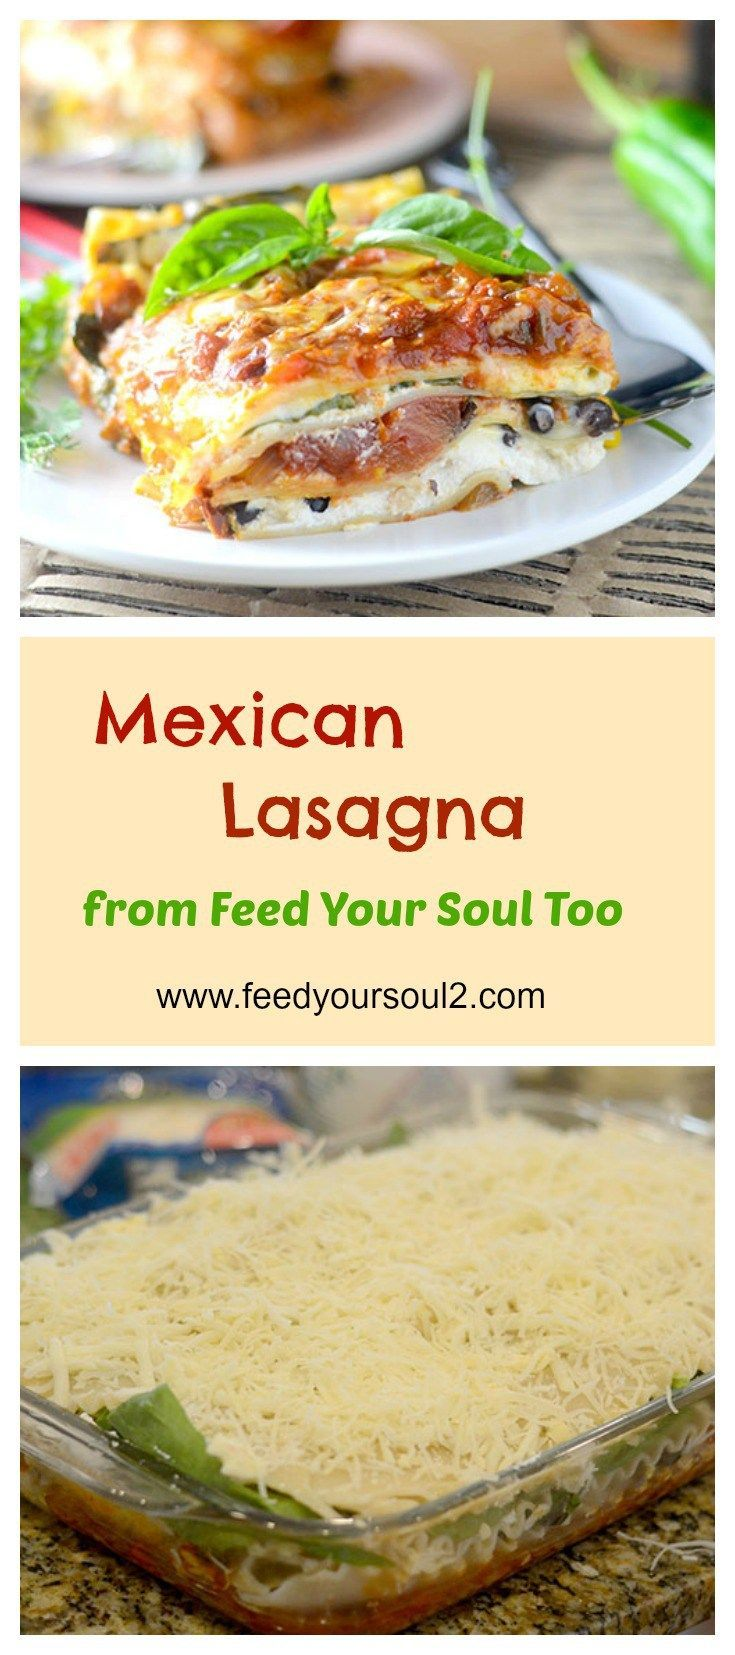 Mexican lasagna recipe mexicans mexican recipes and pasta mexican food recipes mexican lasagna from feed your soul too forumfinder Choice Image